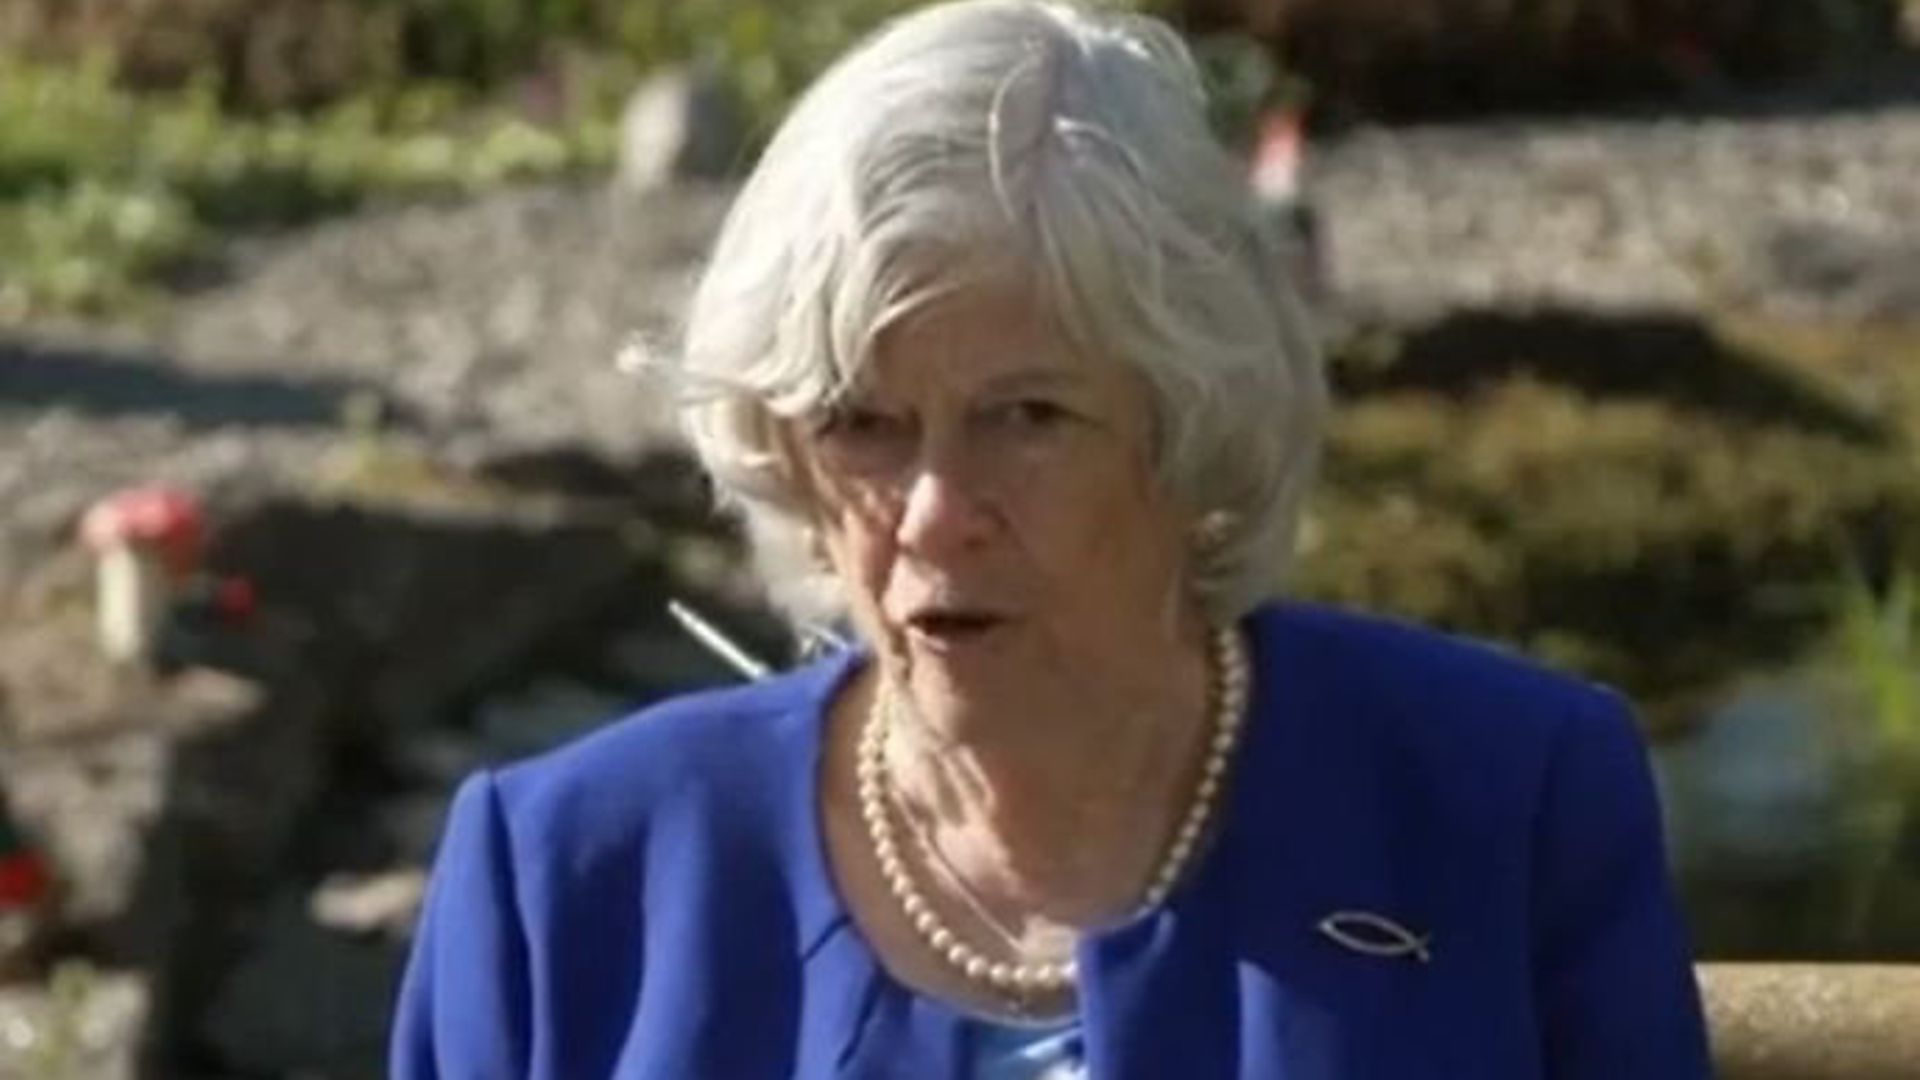 Ann Widdecombe has cancelled her National Trust membership in protest at the body's 'woke games'. - Credit: Archant